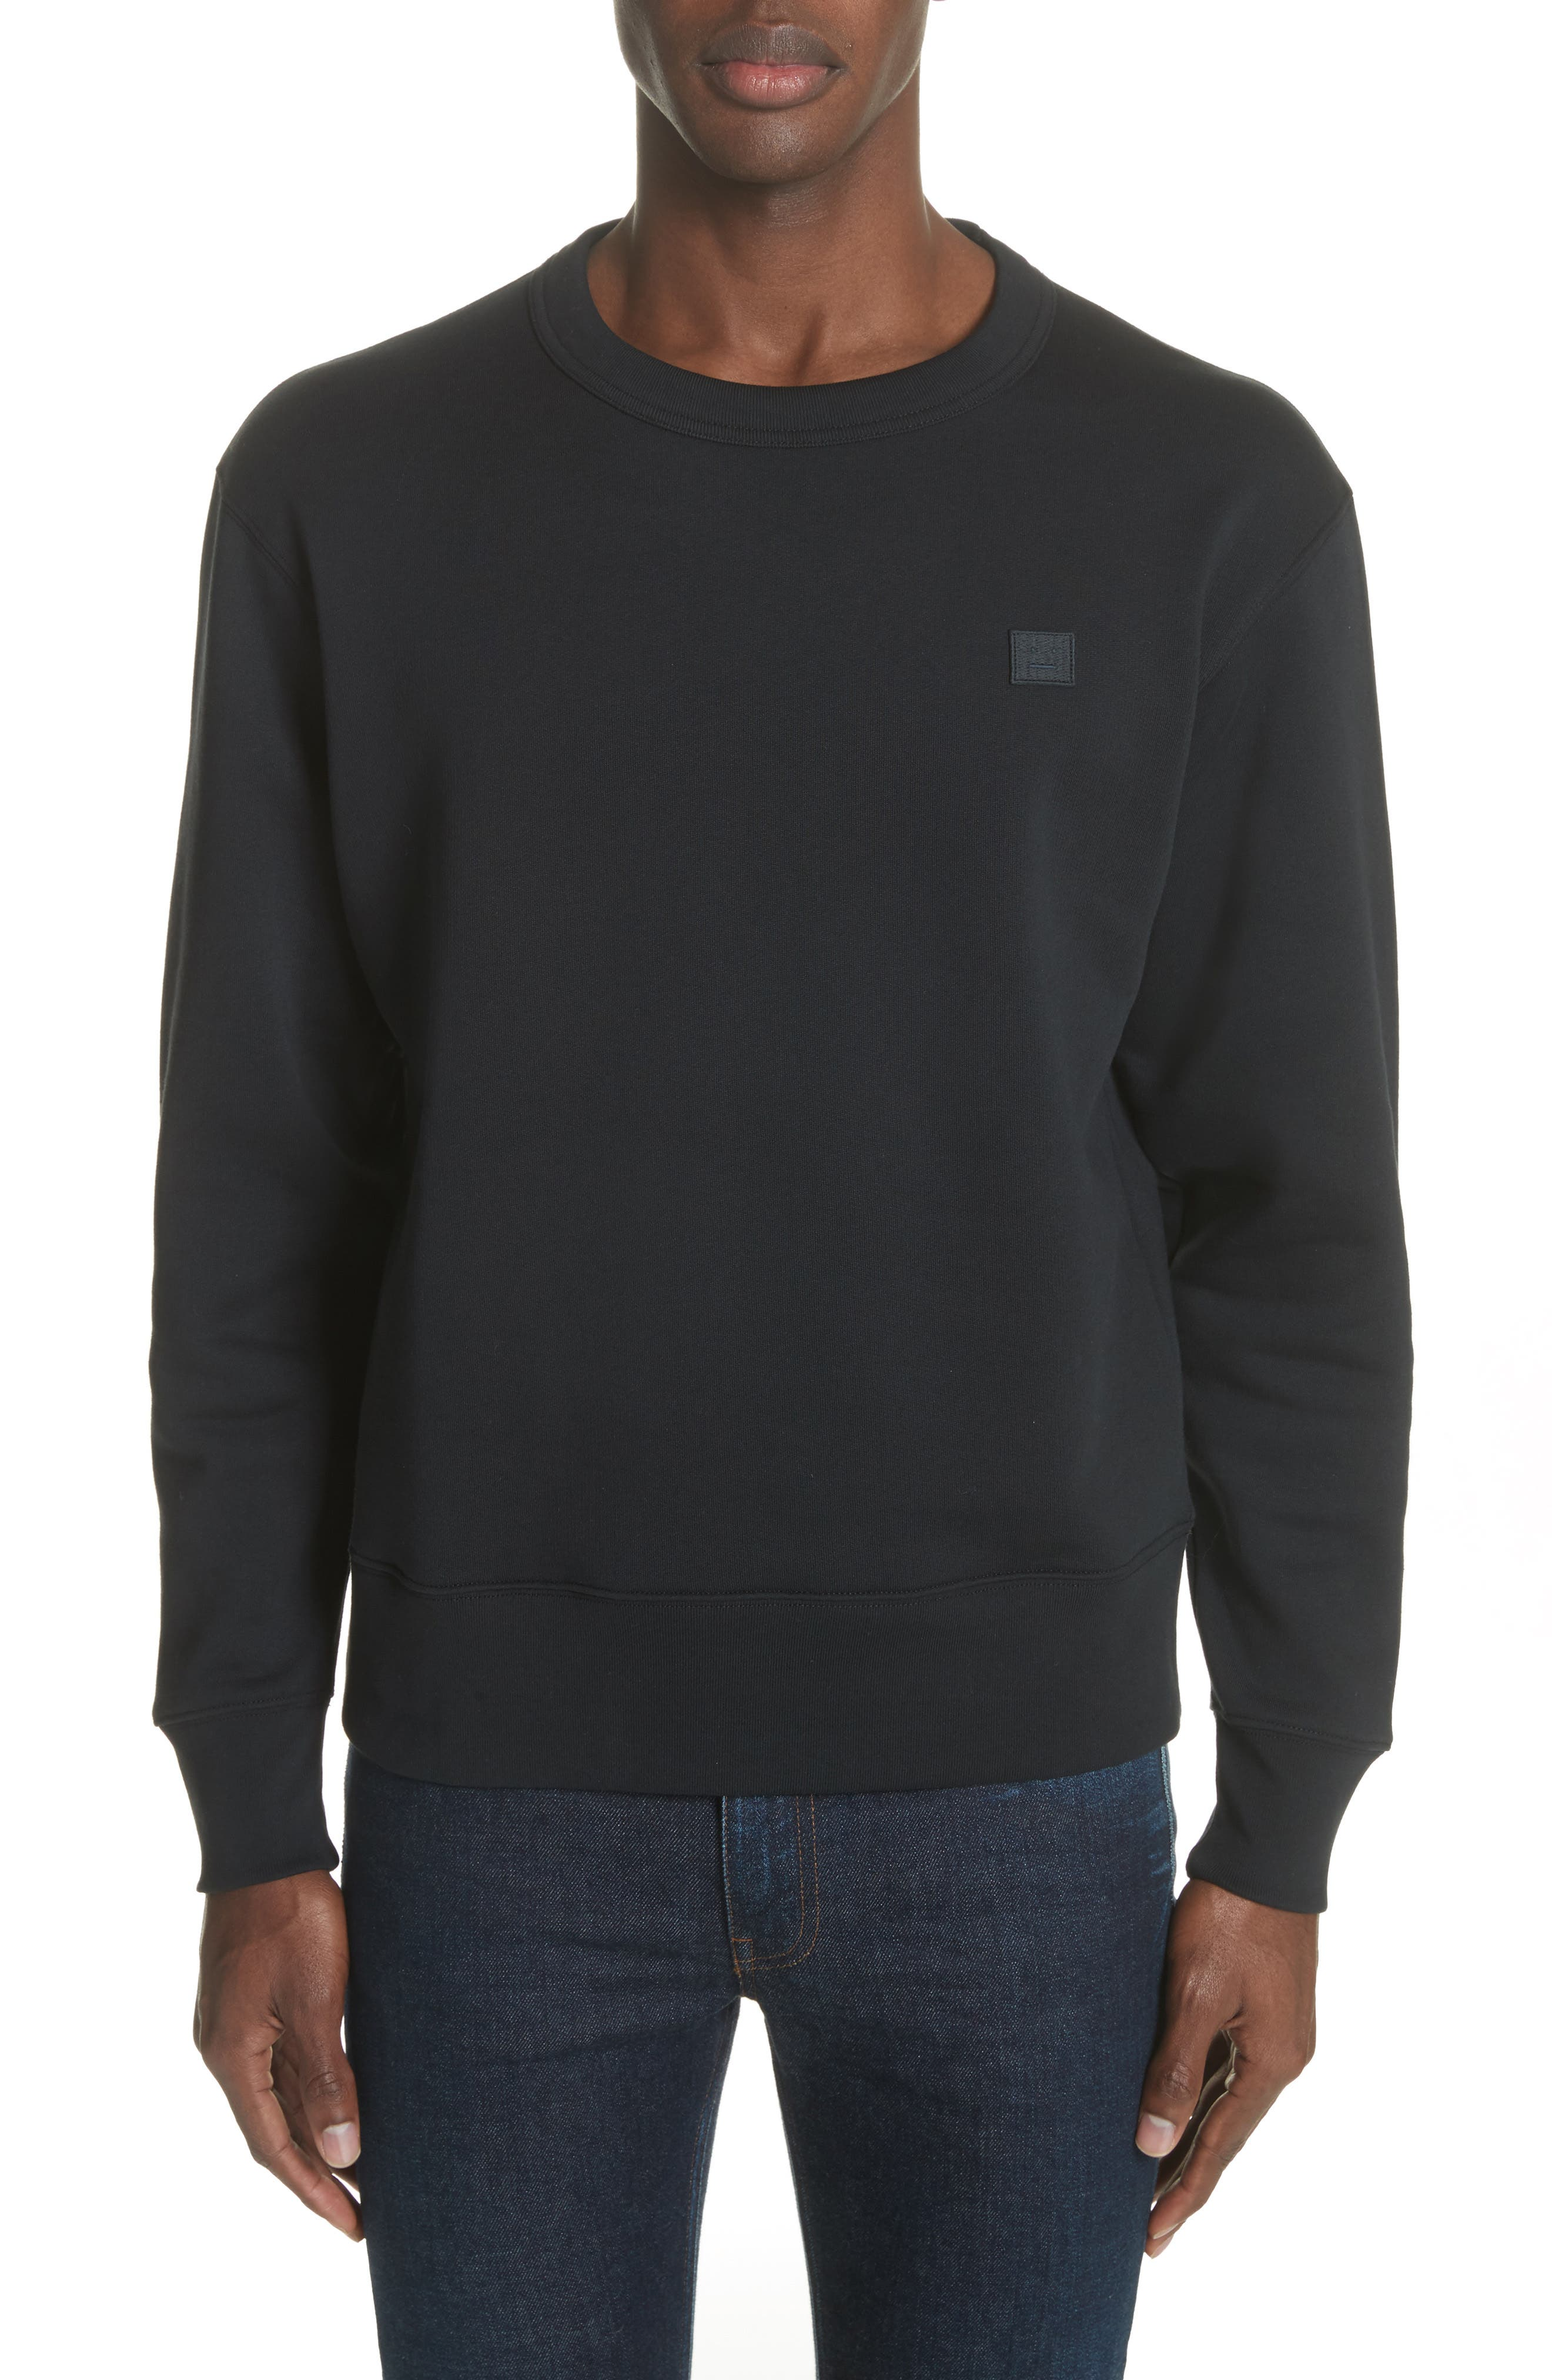 ACNE STUDIOS Fairview Face Crewneck Sweatshirt, Main, color, BLACK